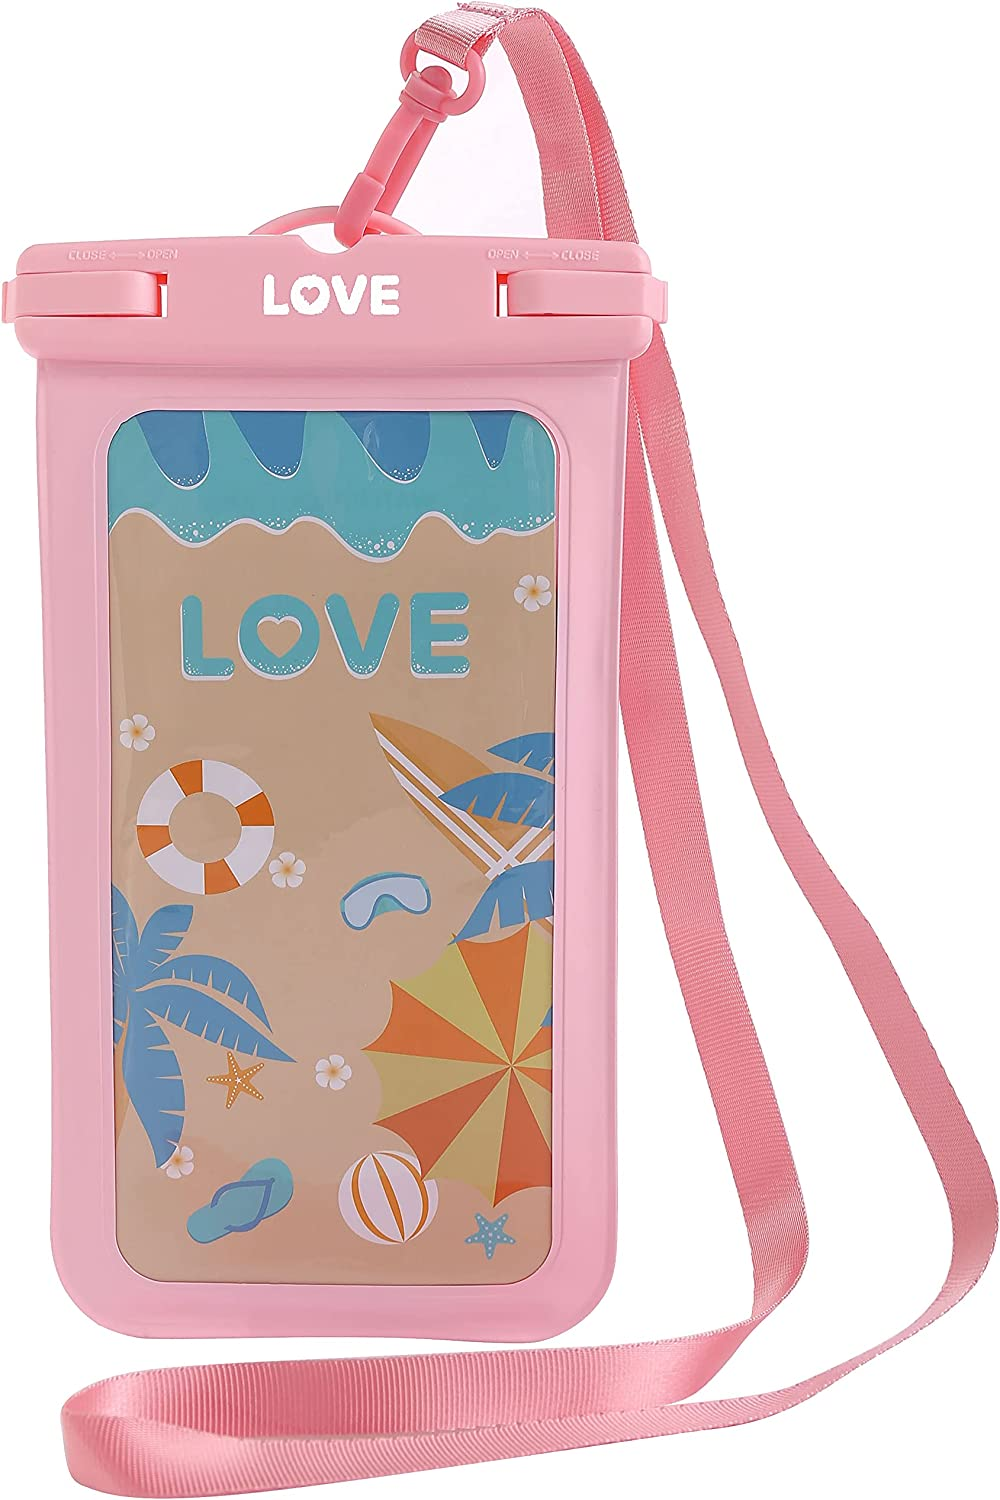 LOVE - Waterproof Phone Pouch, Universal Waterproof Case Underwater Dry Bag IPX8 PVC for iPhone 12 Pro Max XS XR X 8 7 Plus Galaxy Pixel up to 6.9